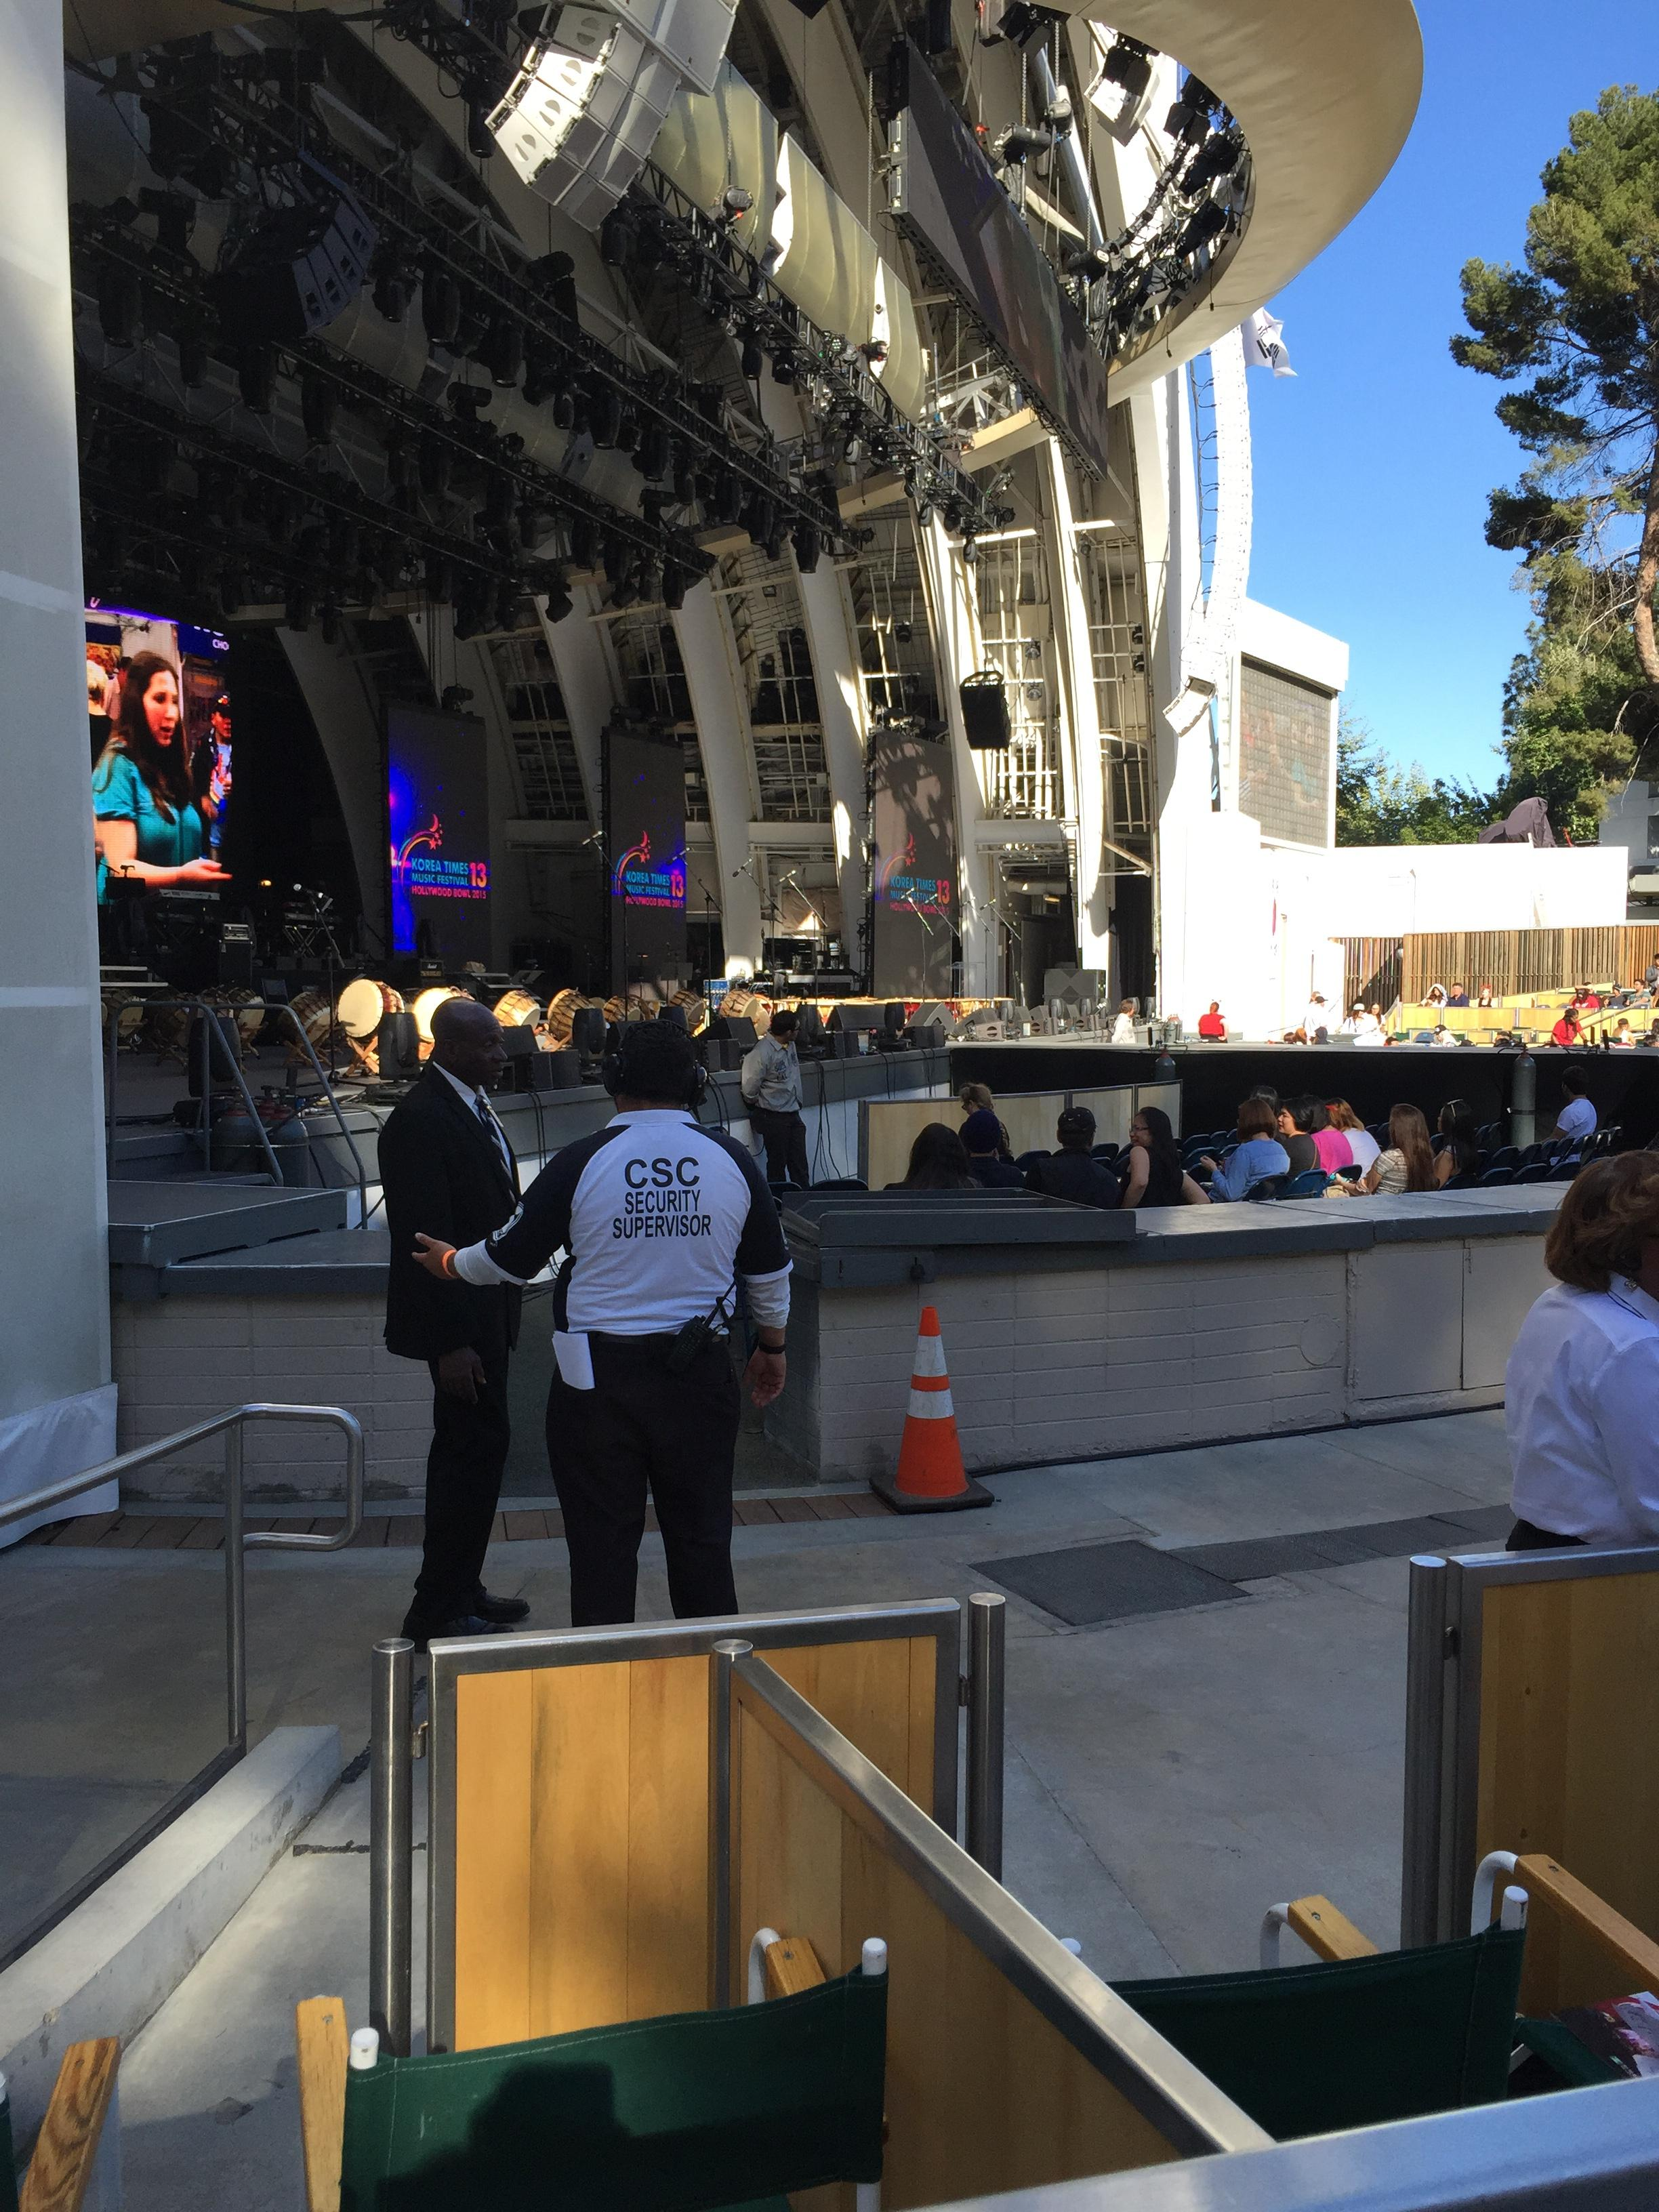 Hollywood Bowl Section Ramp E Row 1 Seat 7